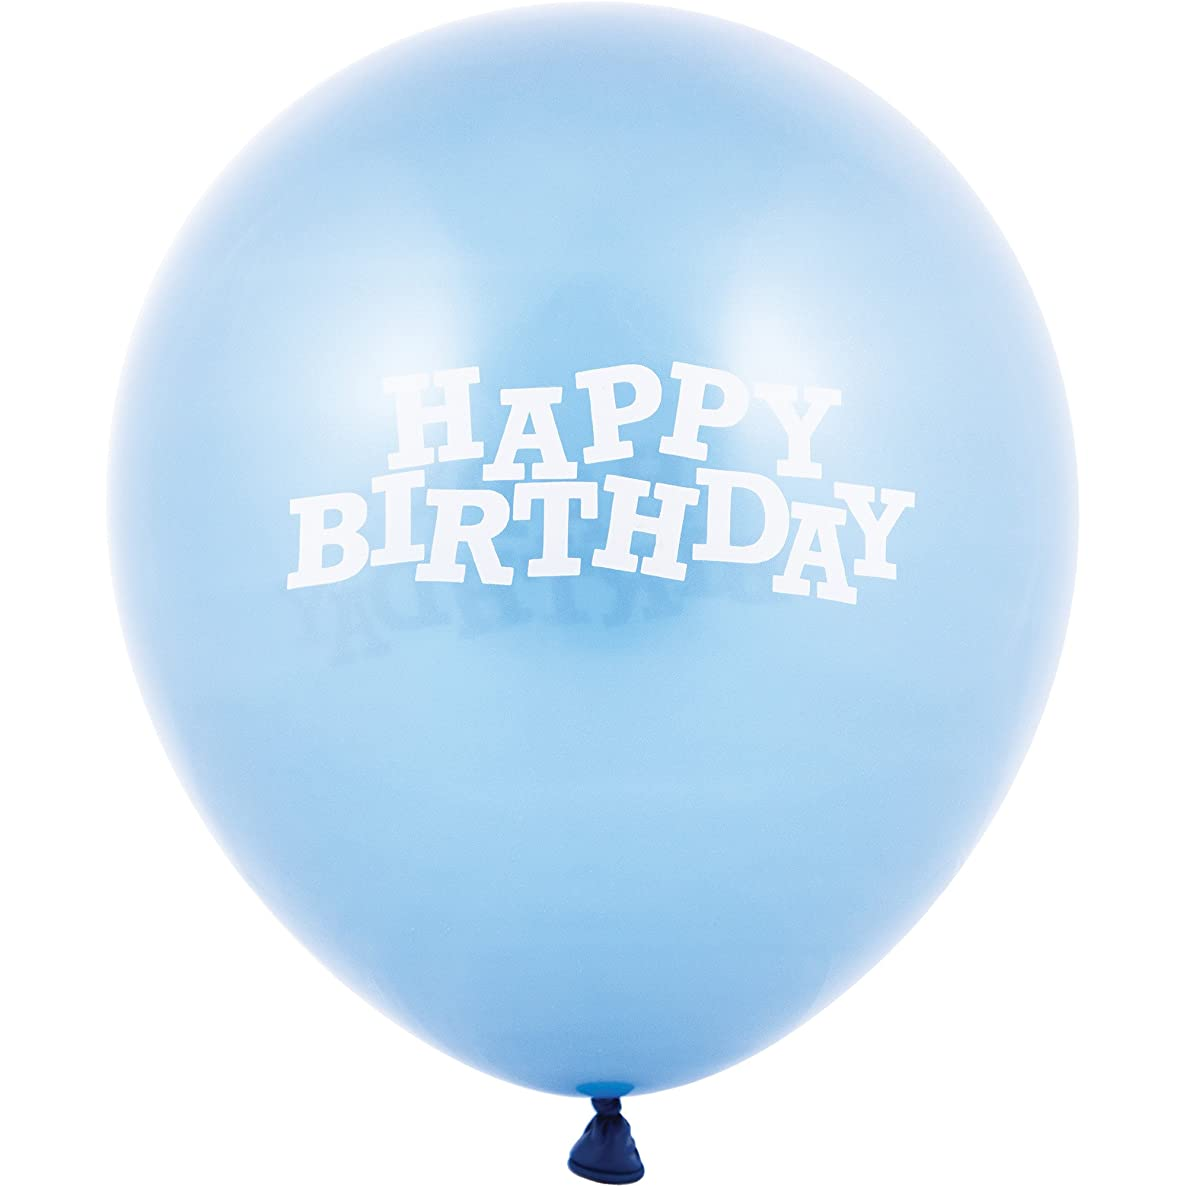 Creative Converting 15 Count Latex Balloons Printed with Happy Birthday, 12